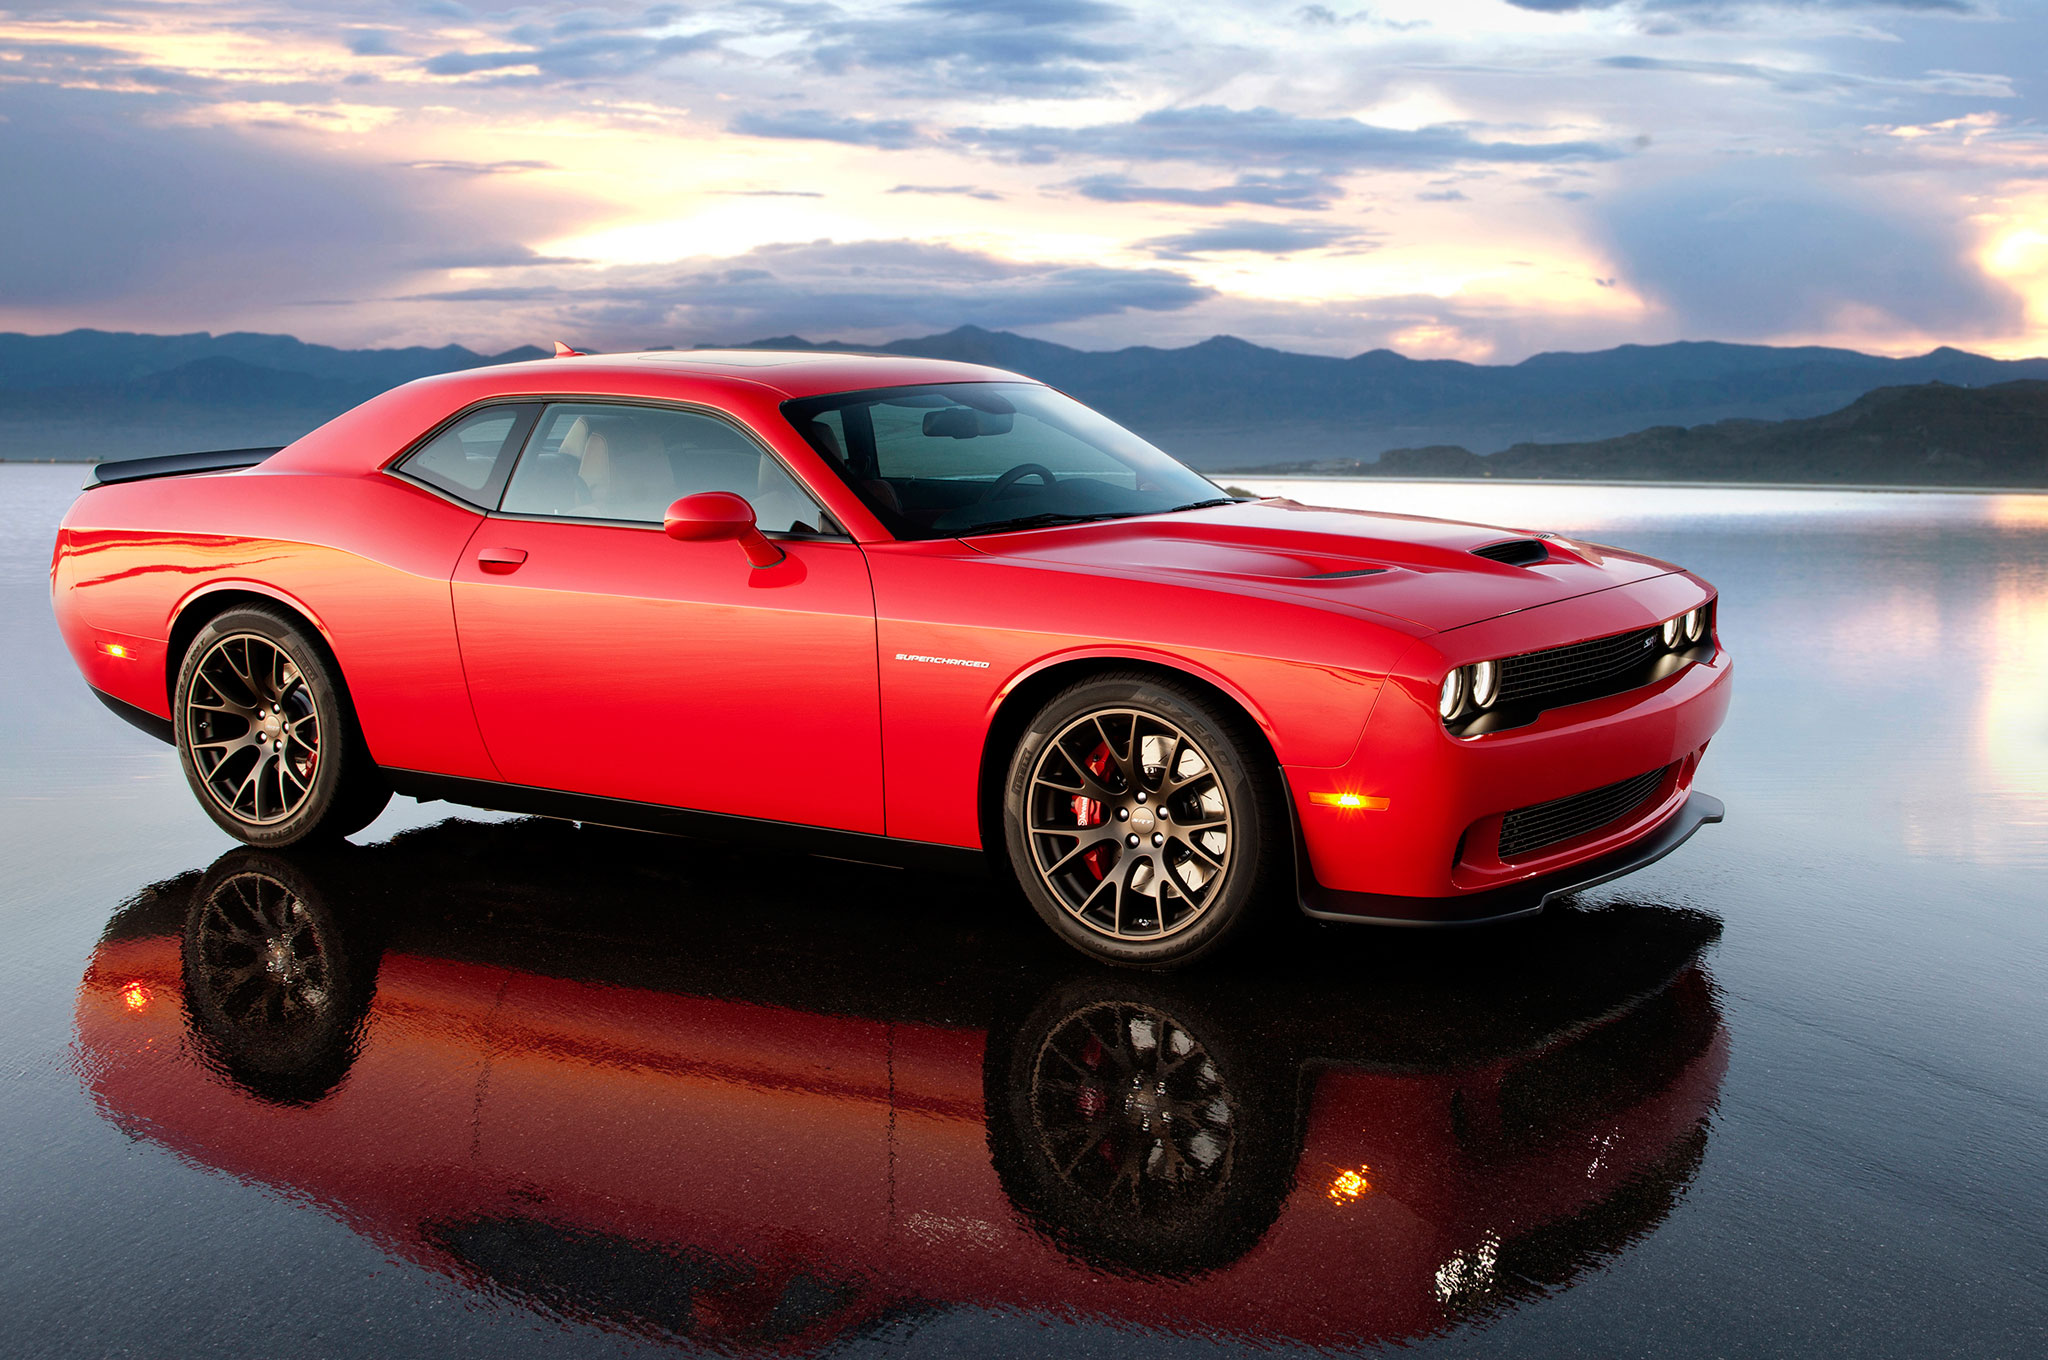 2015 Dodge Challenger Srt Hellcat Side View With Reflection Photo 61 2048x1360